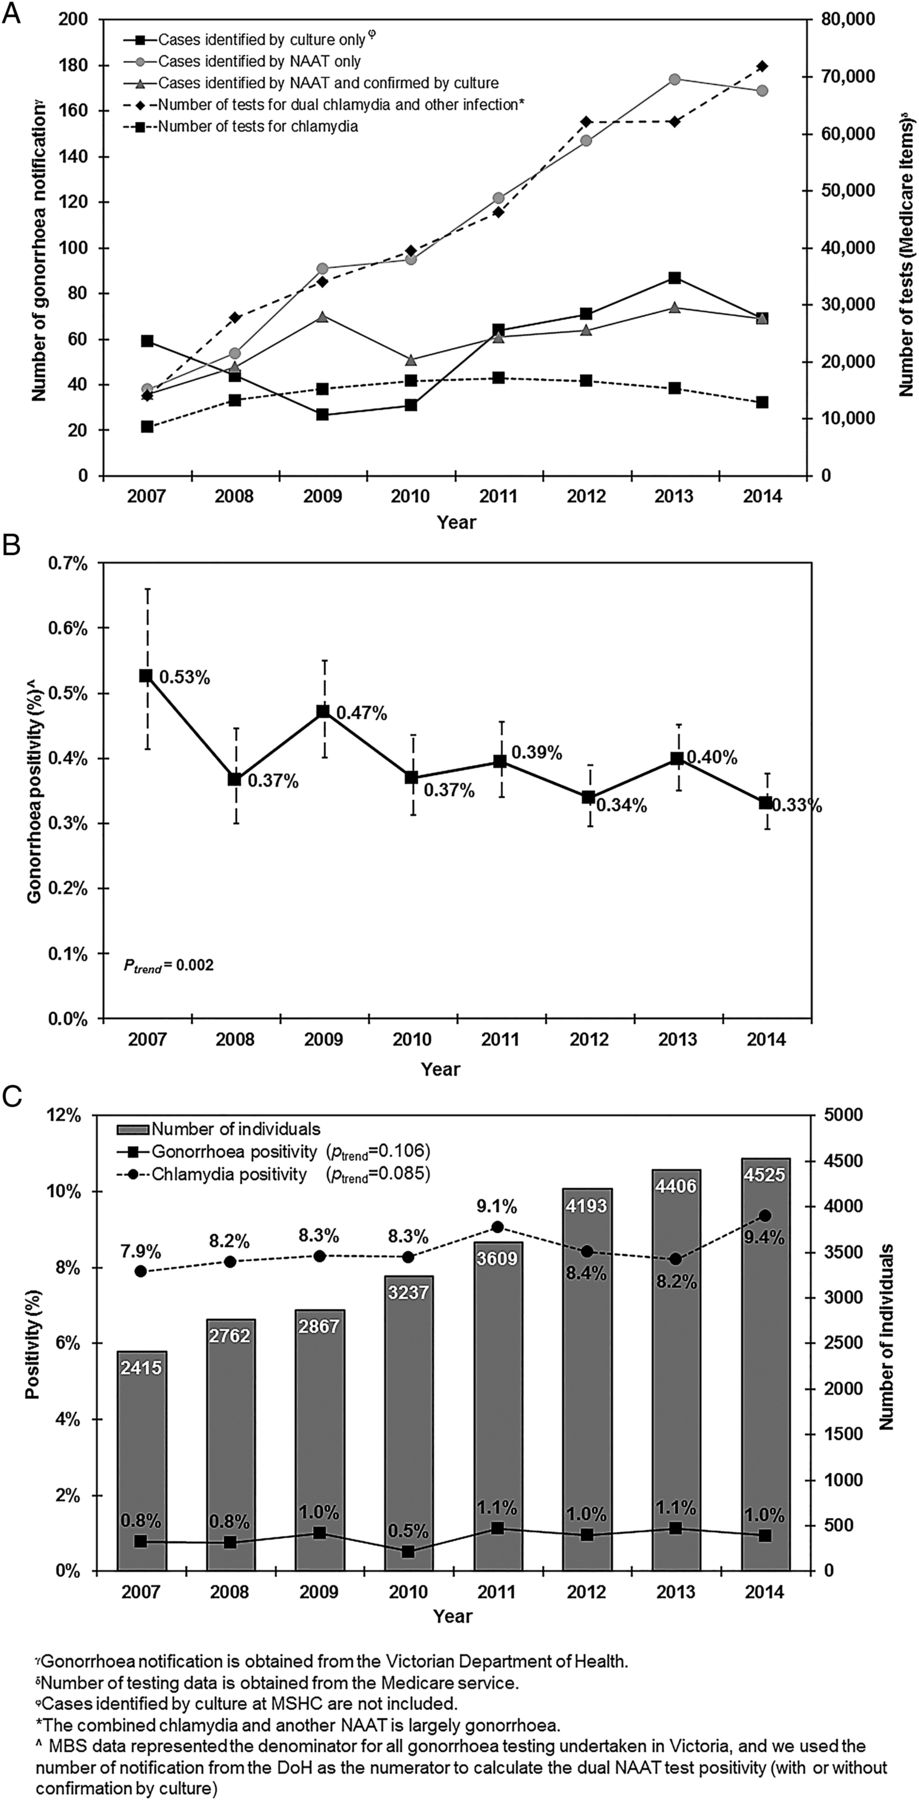 Trends in gonorrhoea positivity by nucleic acid